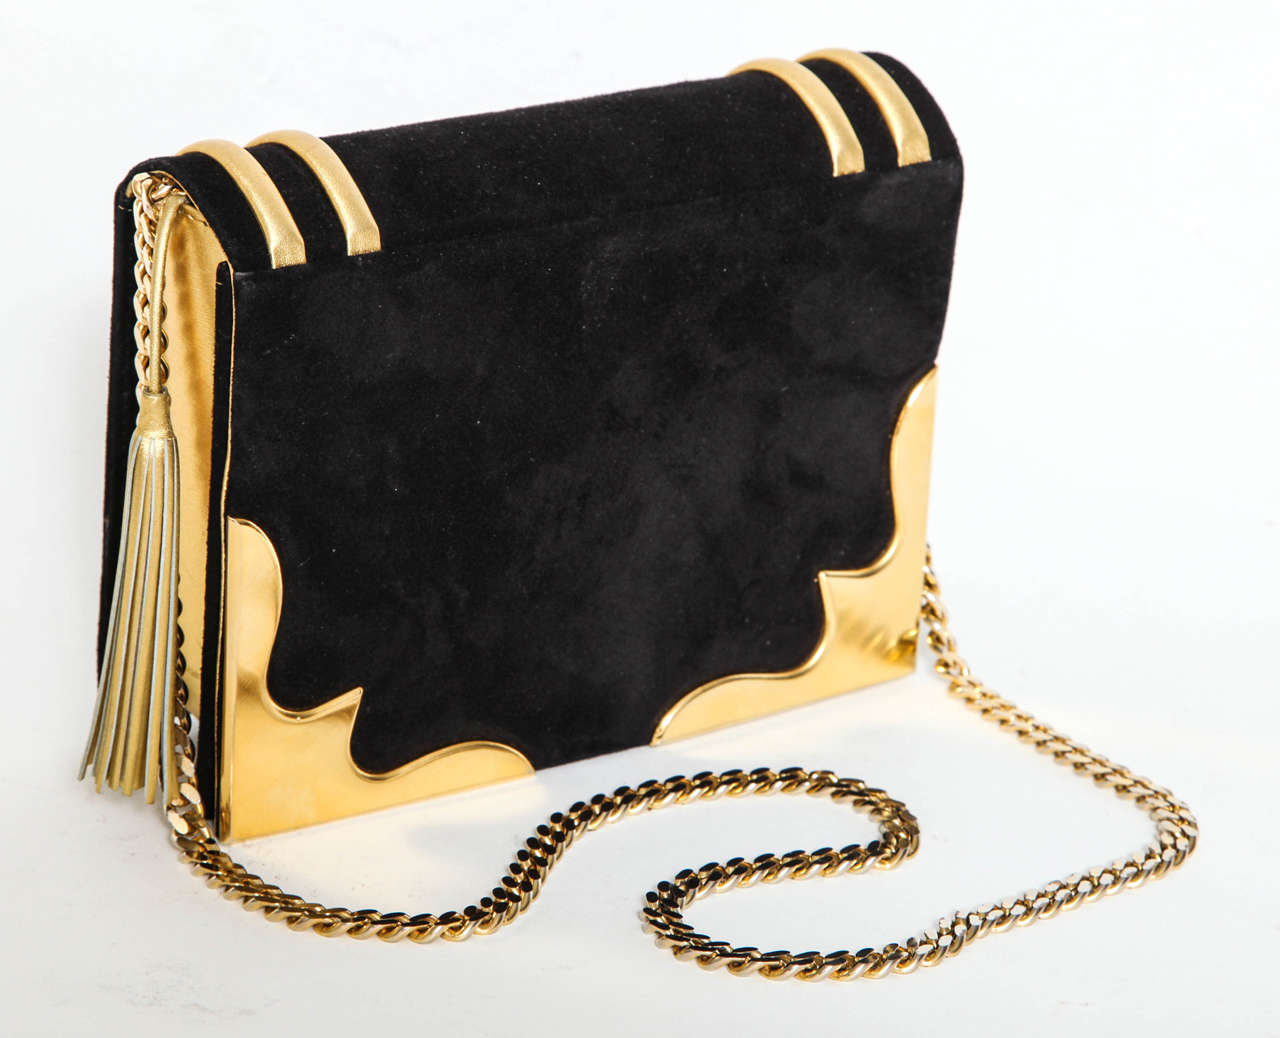 This Purse Is One Of Paloma Picassos S Outstanding Designs It Functional And Stylish Made